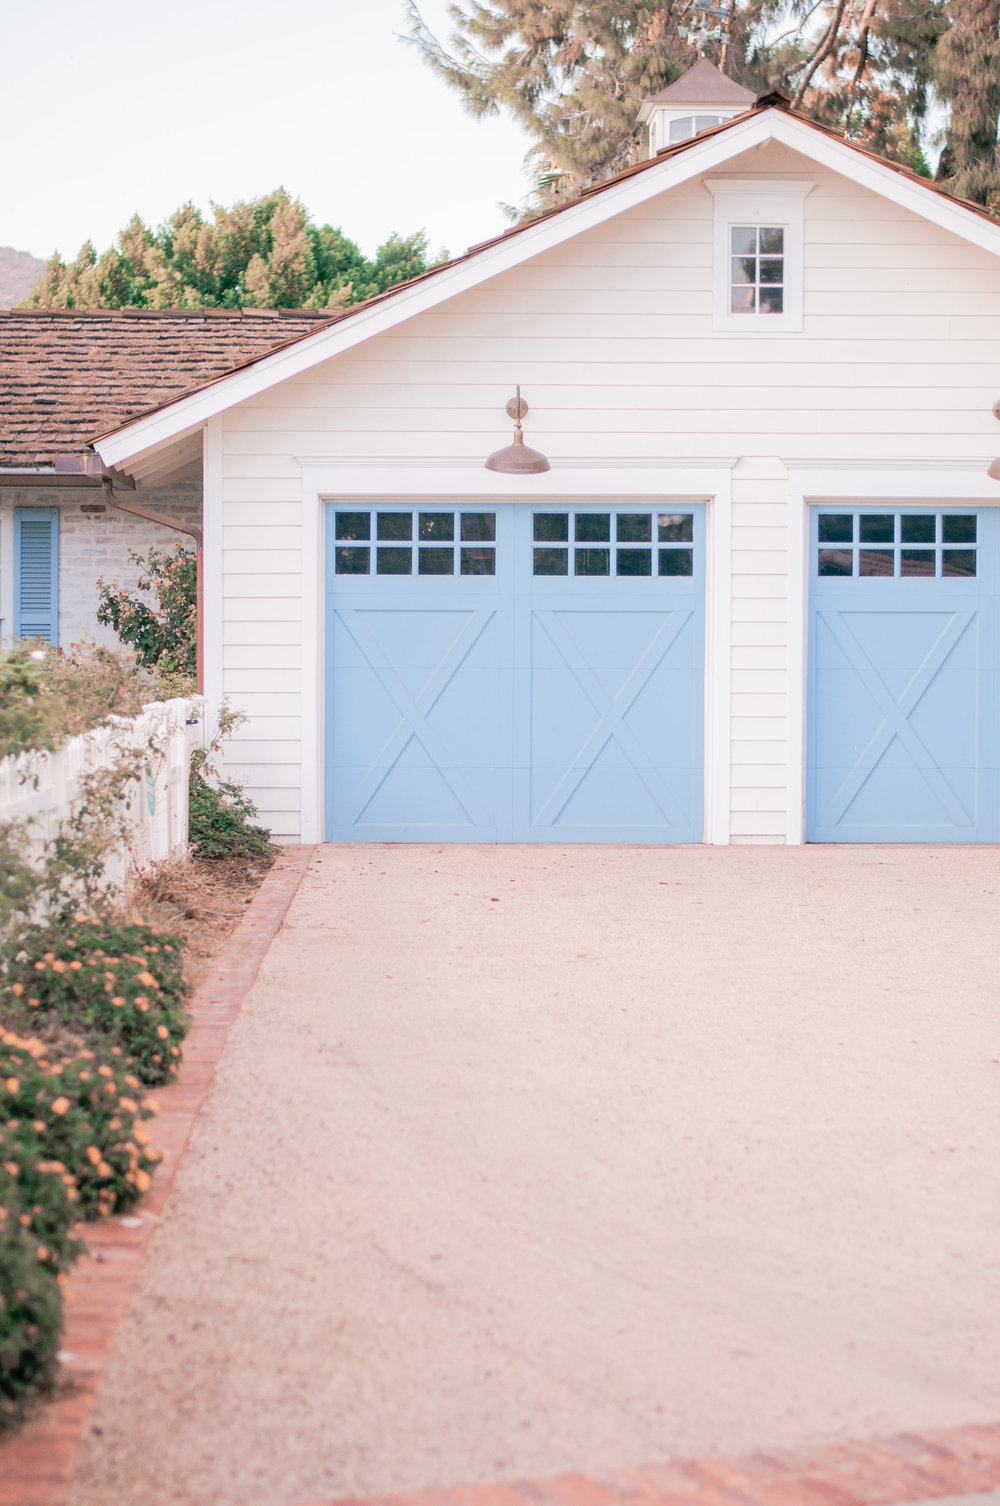 A unique, colorful garage door home design in Arcadia, Phoenix, Arizona